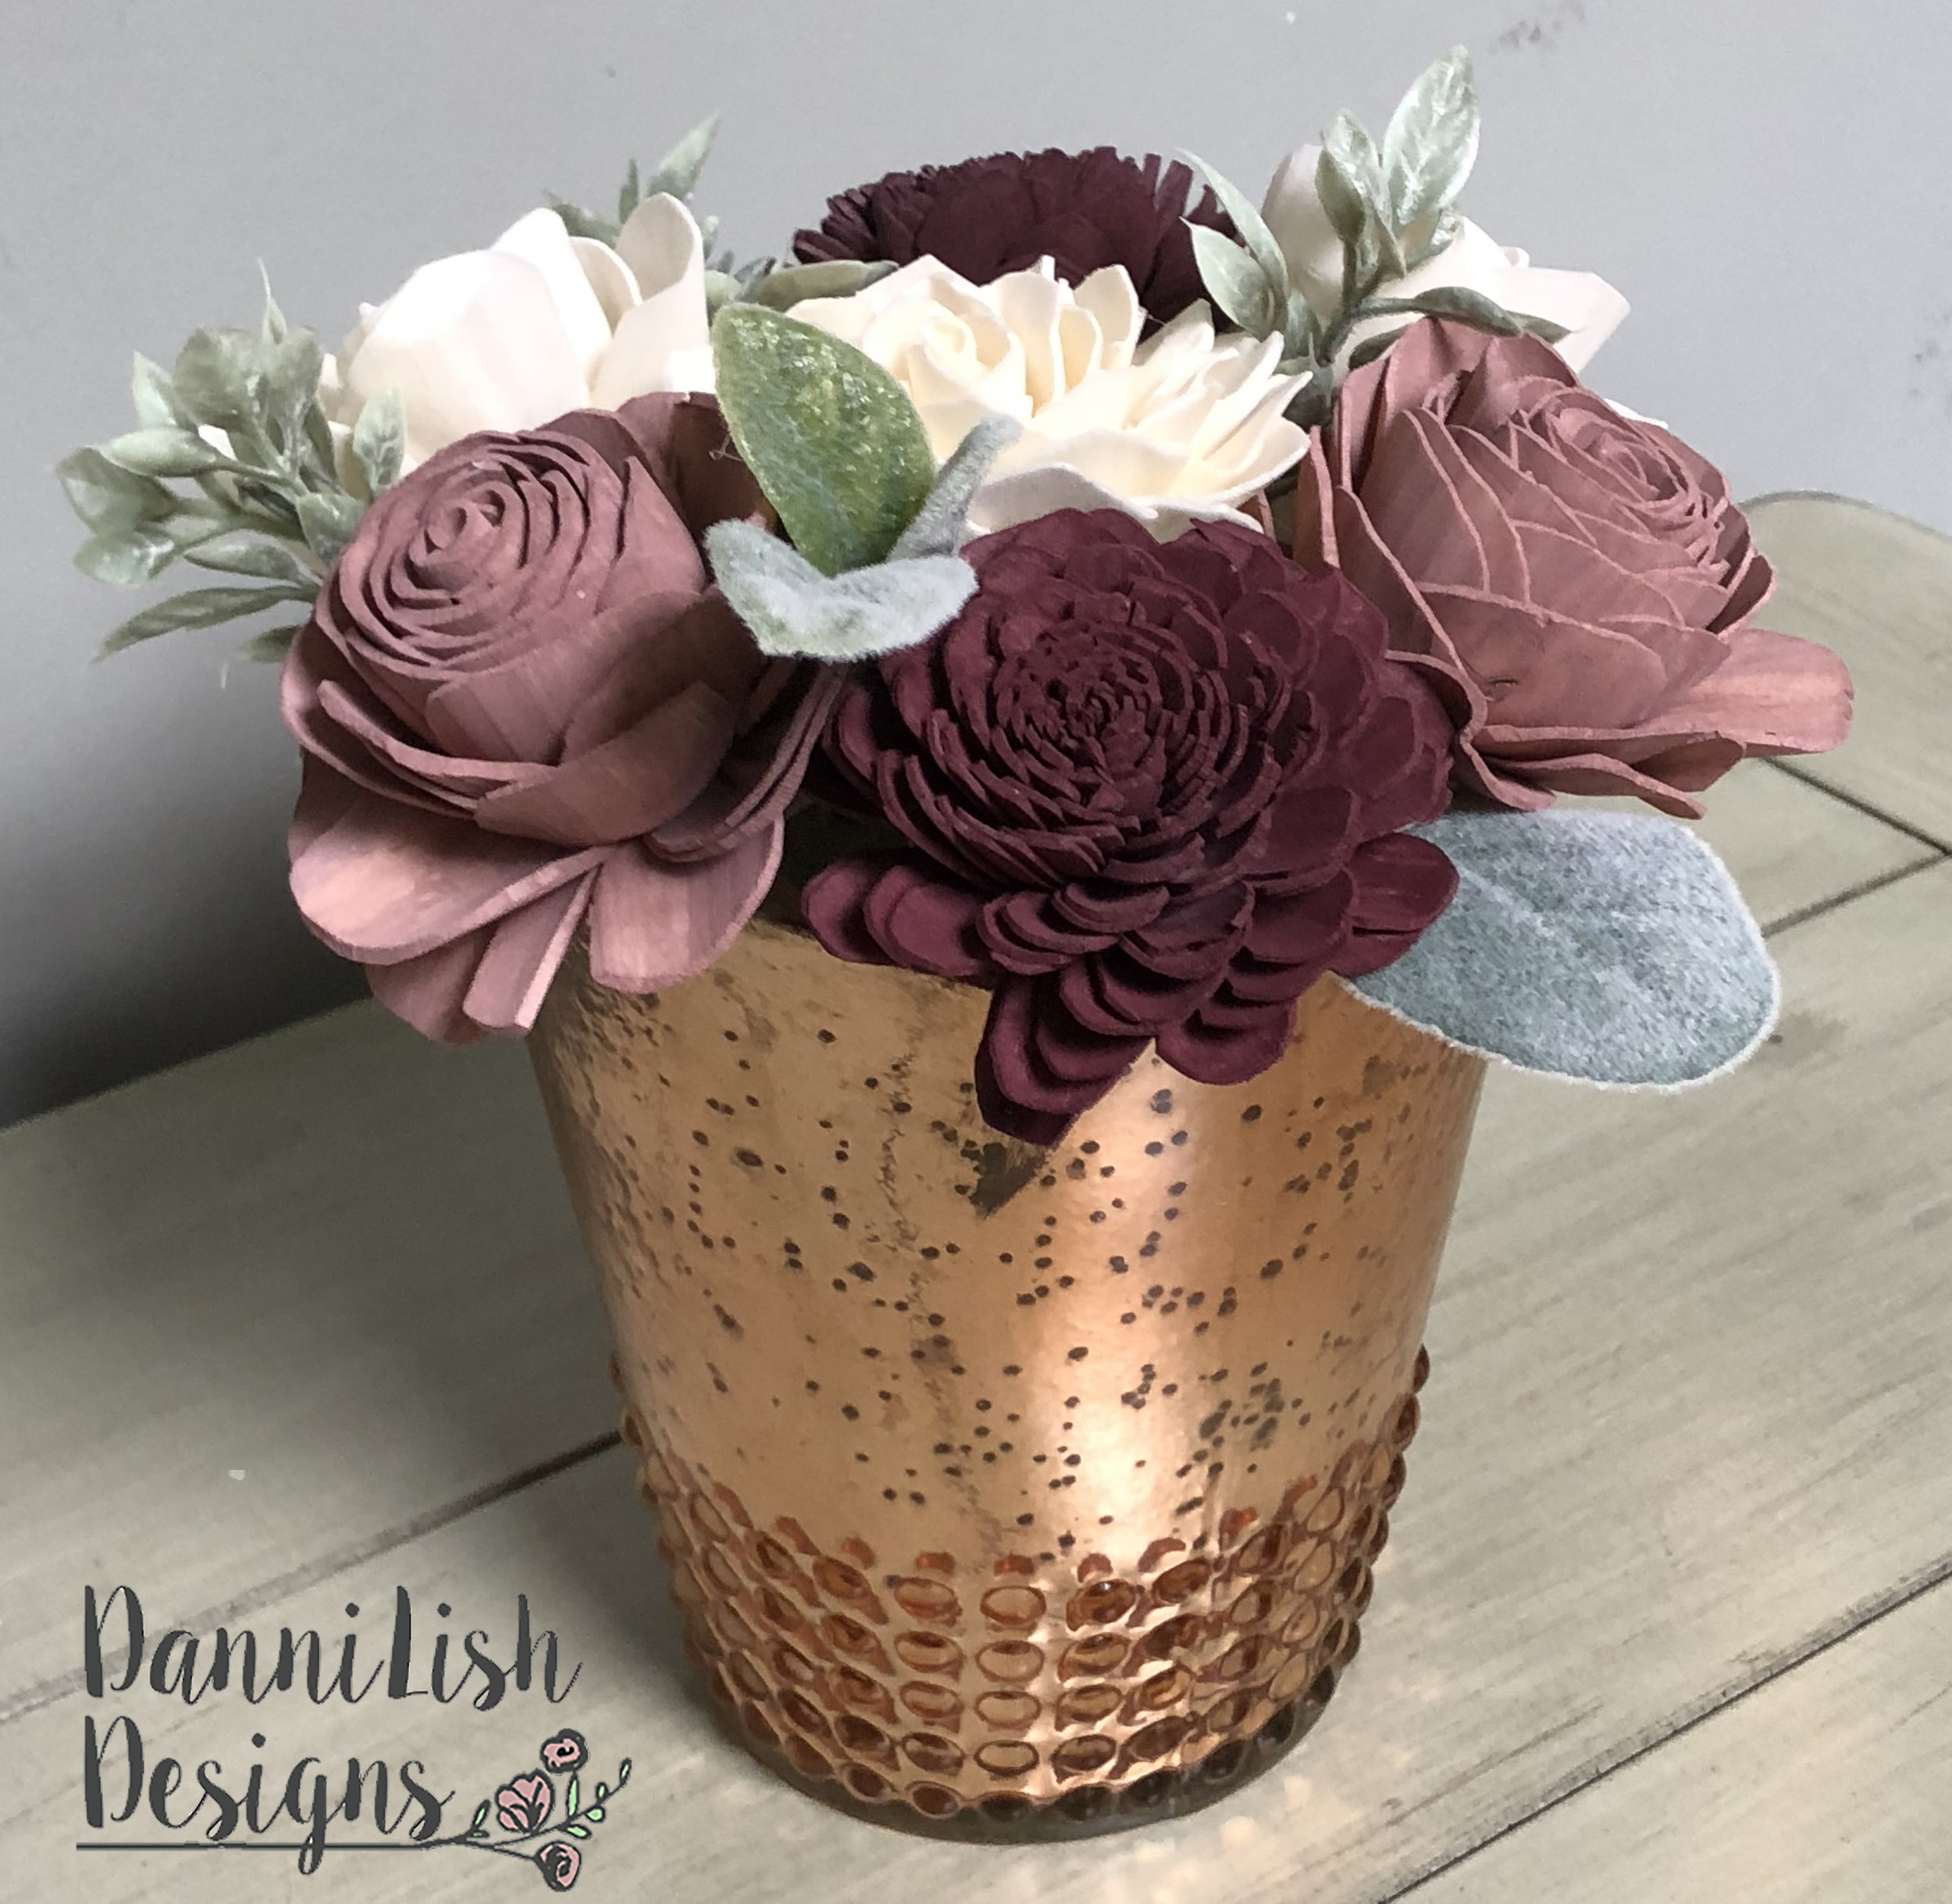 CENTERPIECES - Browse a variety of centerpieces for your mantle, dining room table or event.